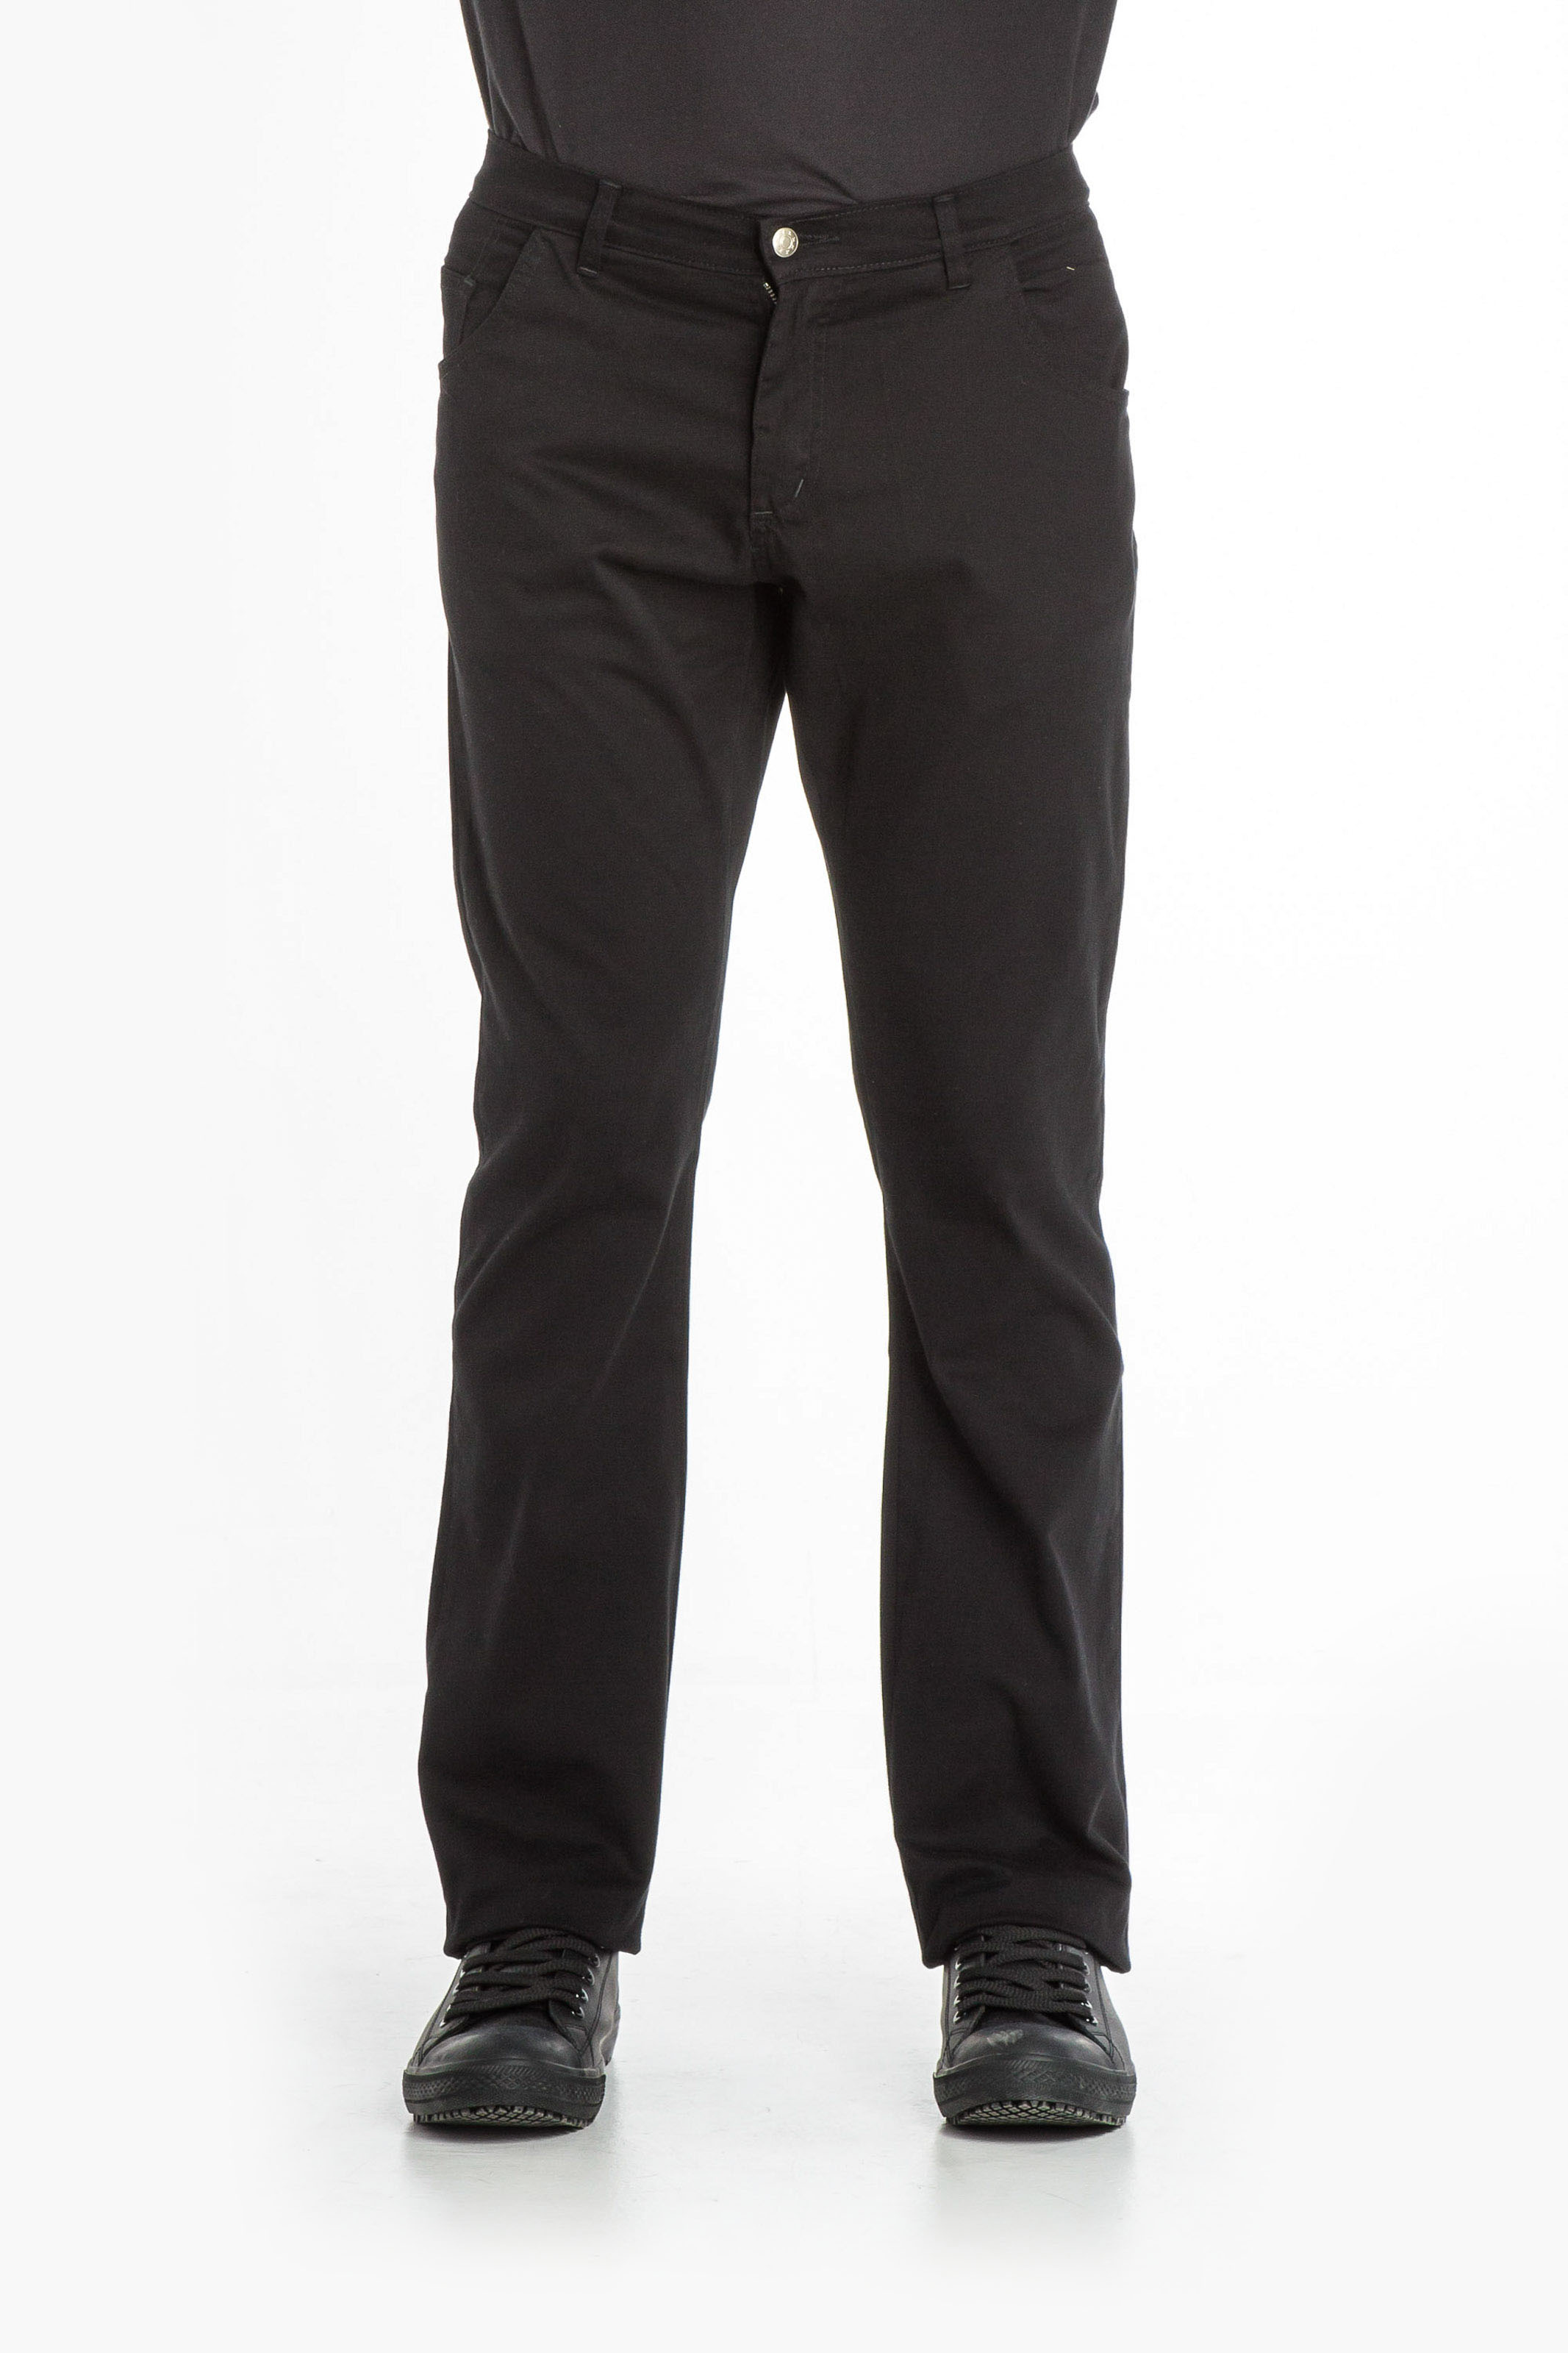 Aris Uniforms-MT08-Men's Casual Trouser